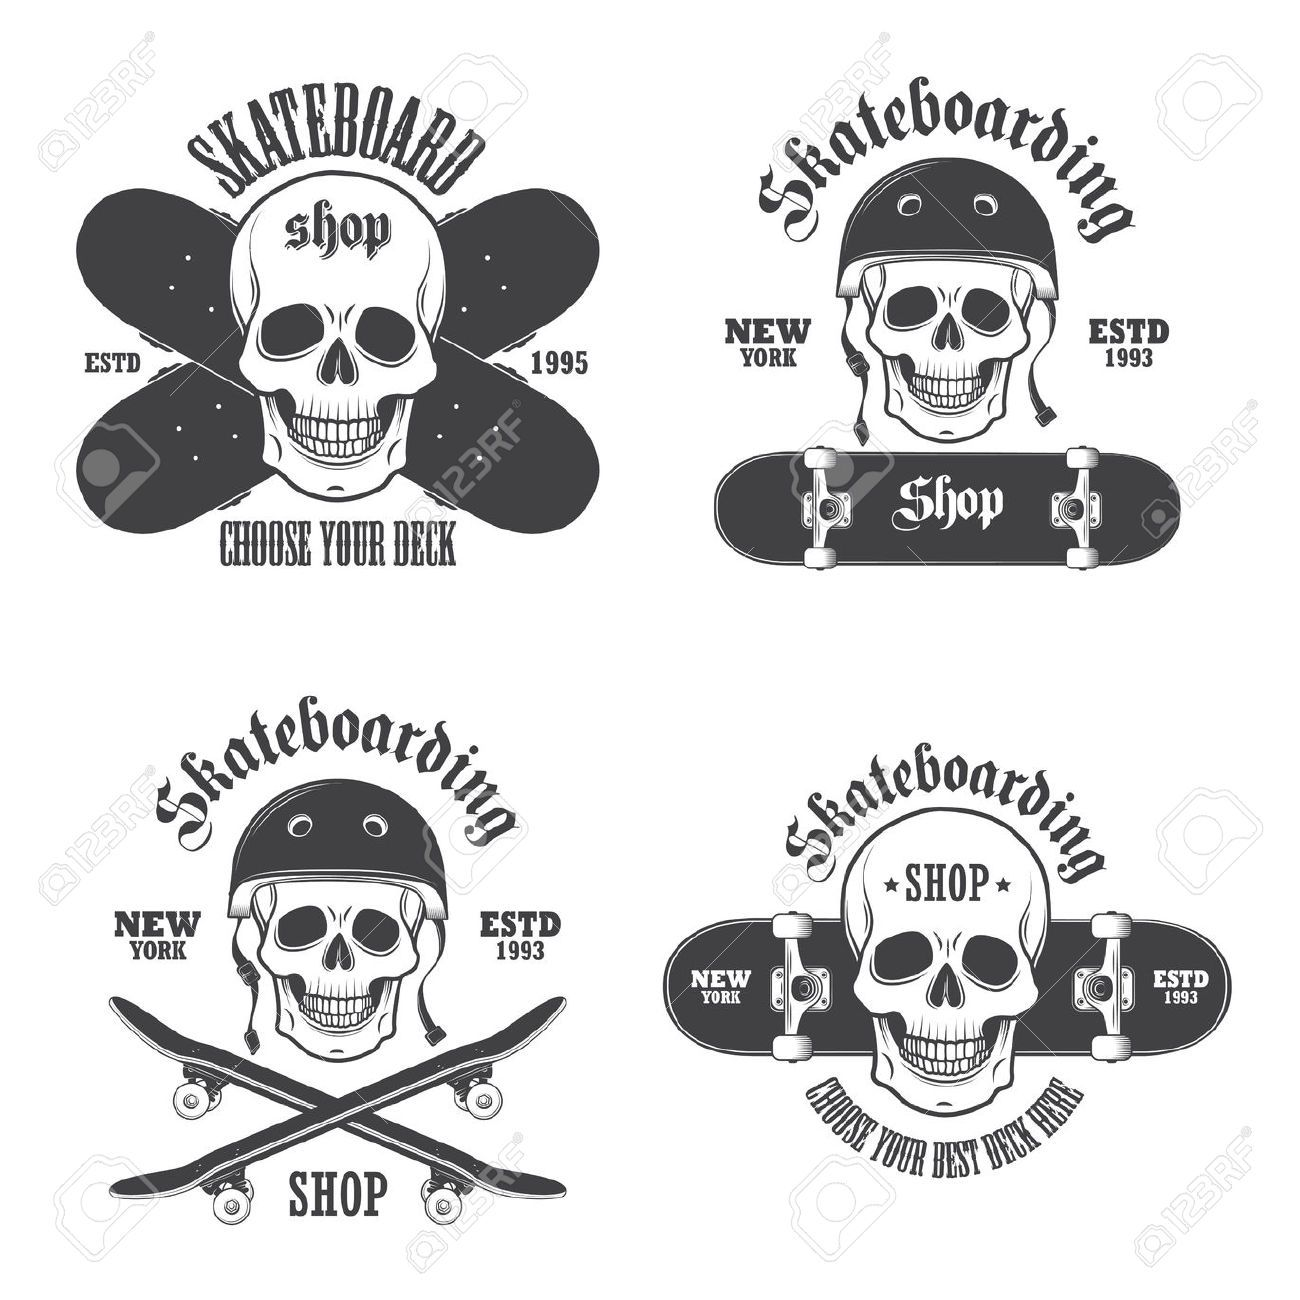 Skateboard clip art images skateboard stock photos amp clipart - Set Of Skateboarding Emblems Labels And Designed Elements Royalty Free Cliparts Vectors And Stock Illustration